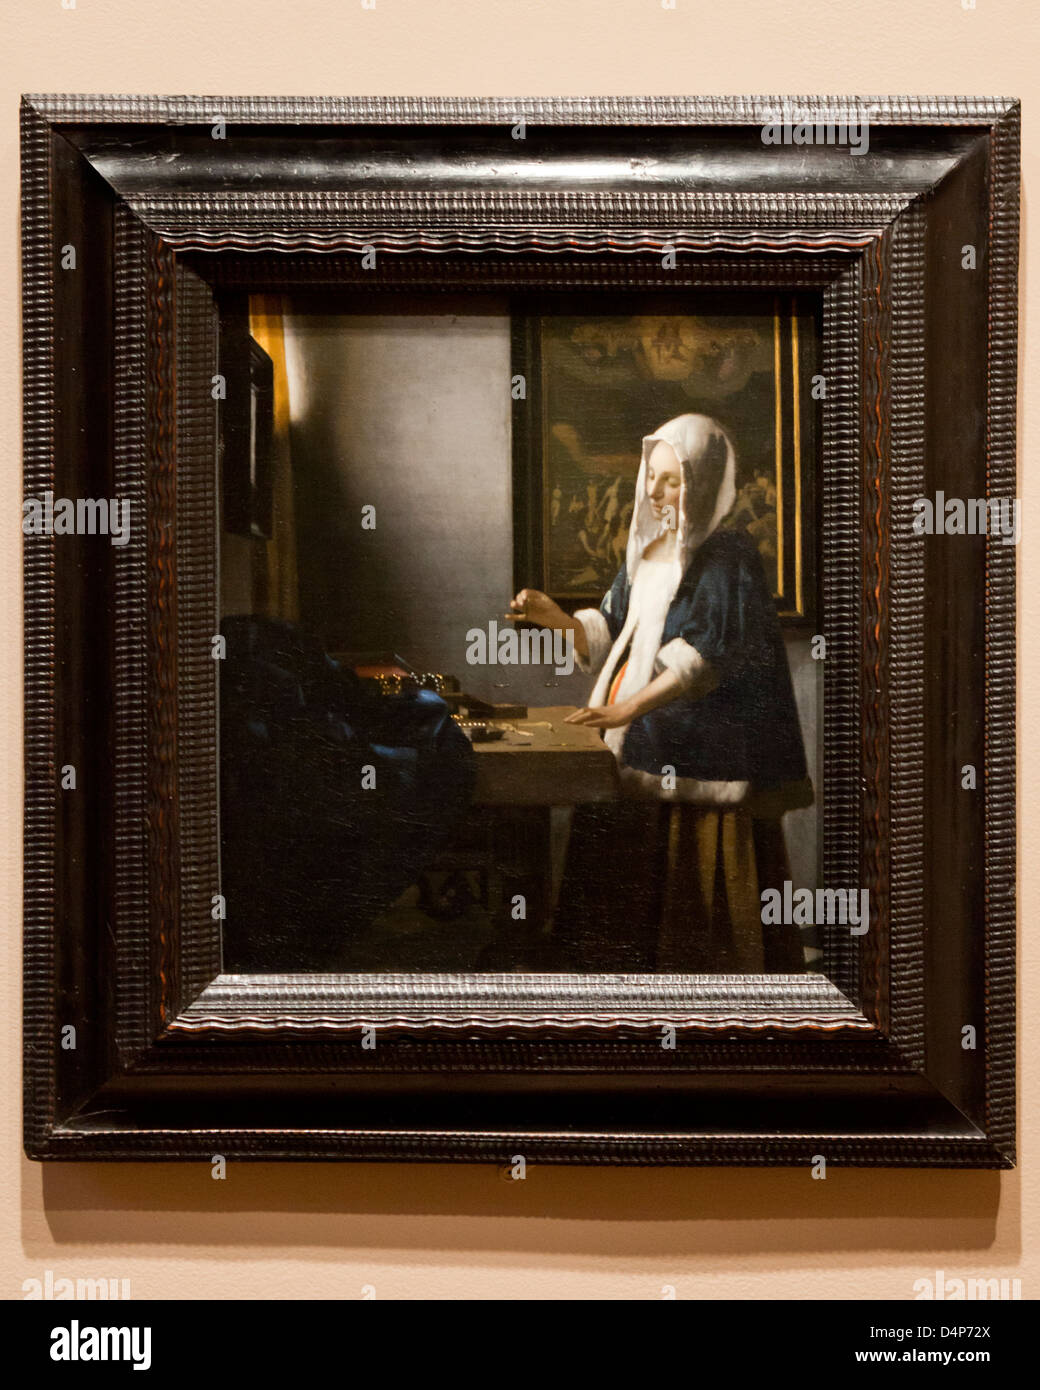 Woman Holding a Balance by Johannes Vermeer, 1664 - Stock Image